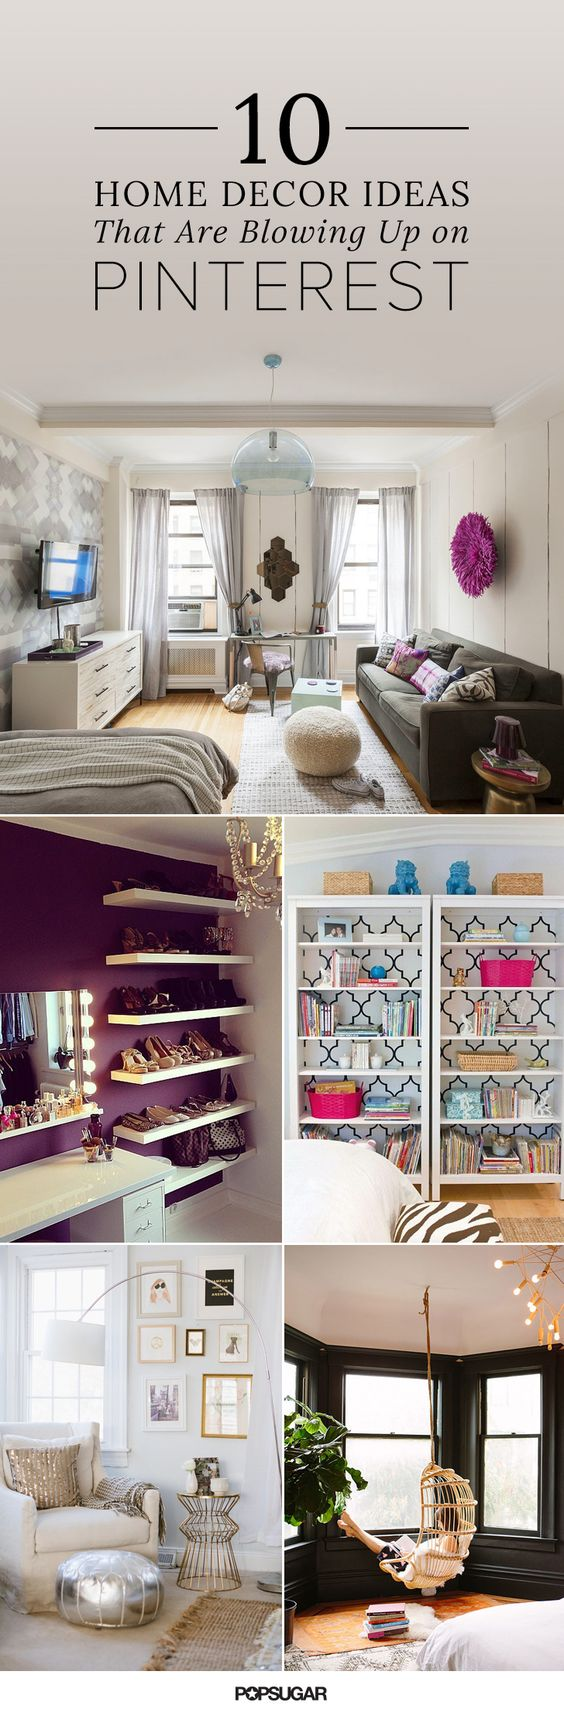 The Purple Inspiration And Bedroom Ideas On Pinterest